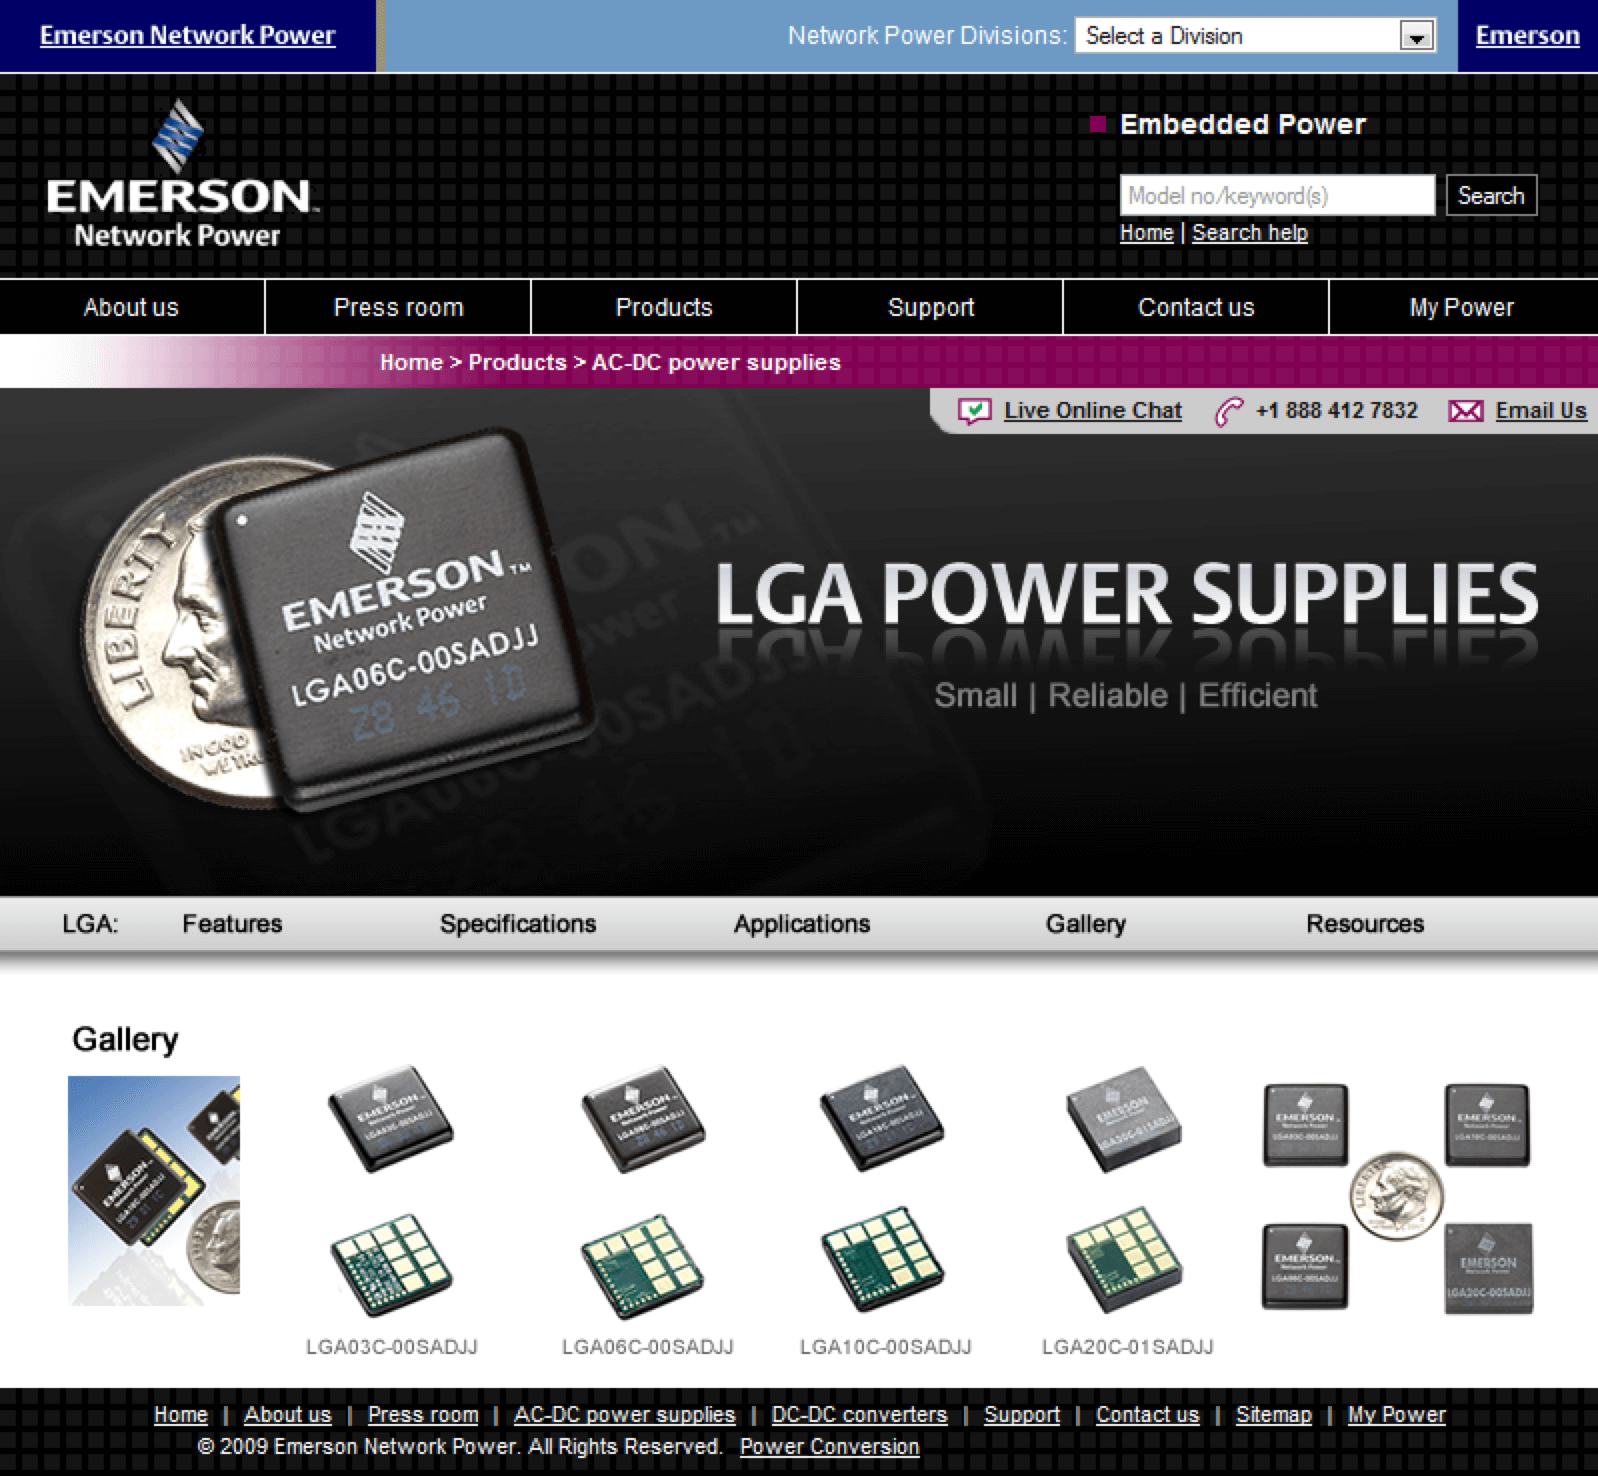 Emerson-LGA-Power-Supplies-Website-Design-Conference-Roadshow-Products